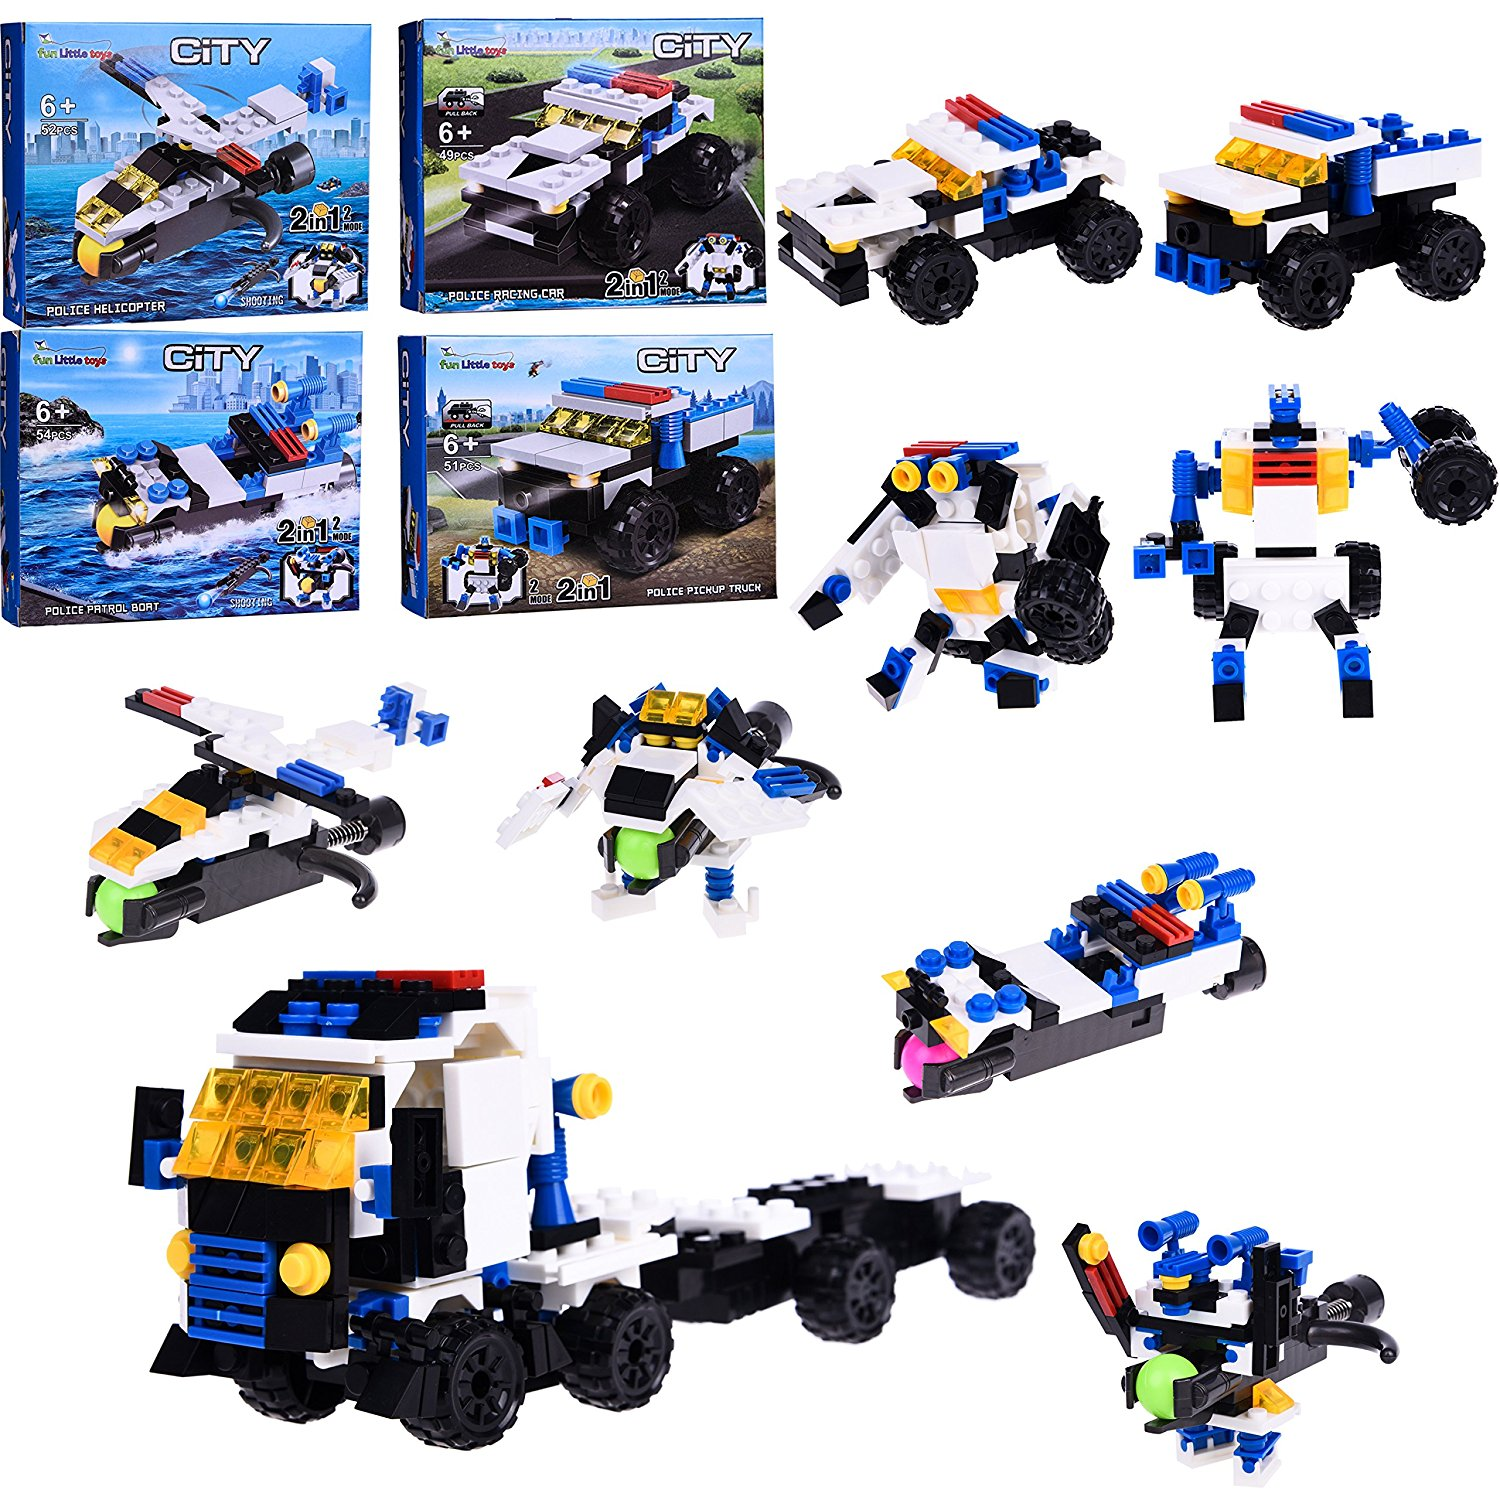 DIY Building Blocks 2 in 1 City Police Helicopter, Boat, Pickup Truck, Racing Vehicle... by Fun Little Toys